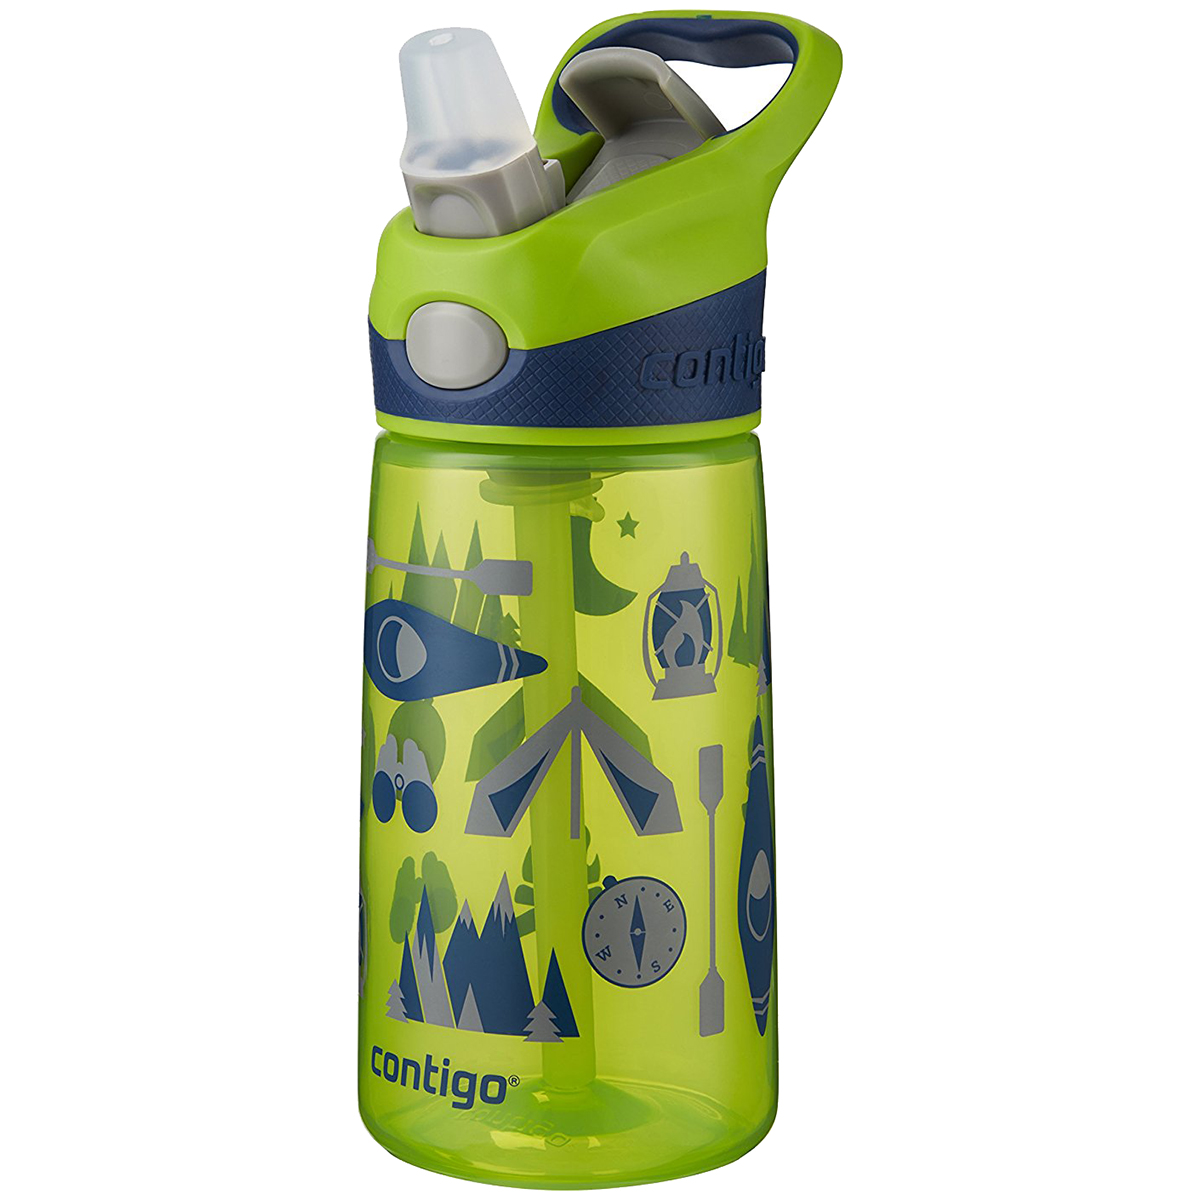 Contigo-14-oz-Kid-039-s-Striker-Autospout-Water-Bottle miniature 16